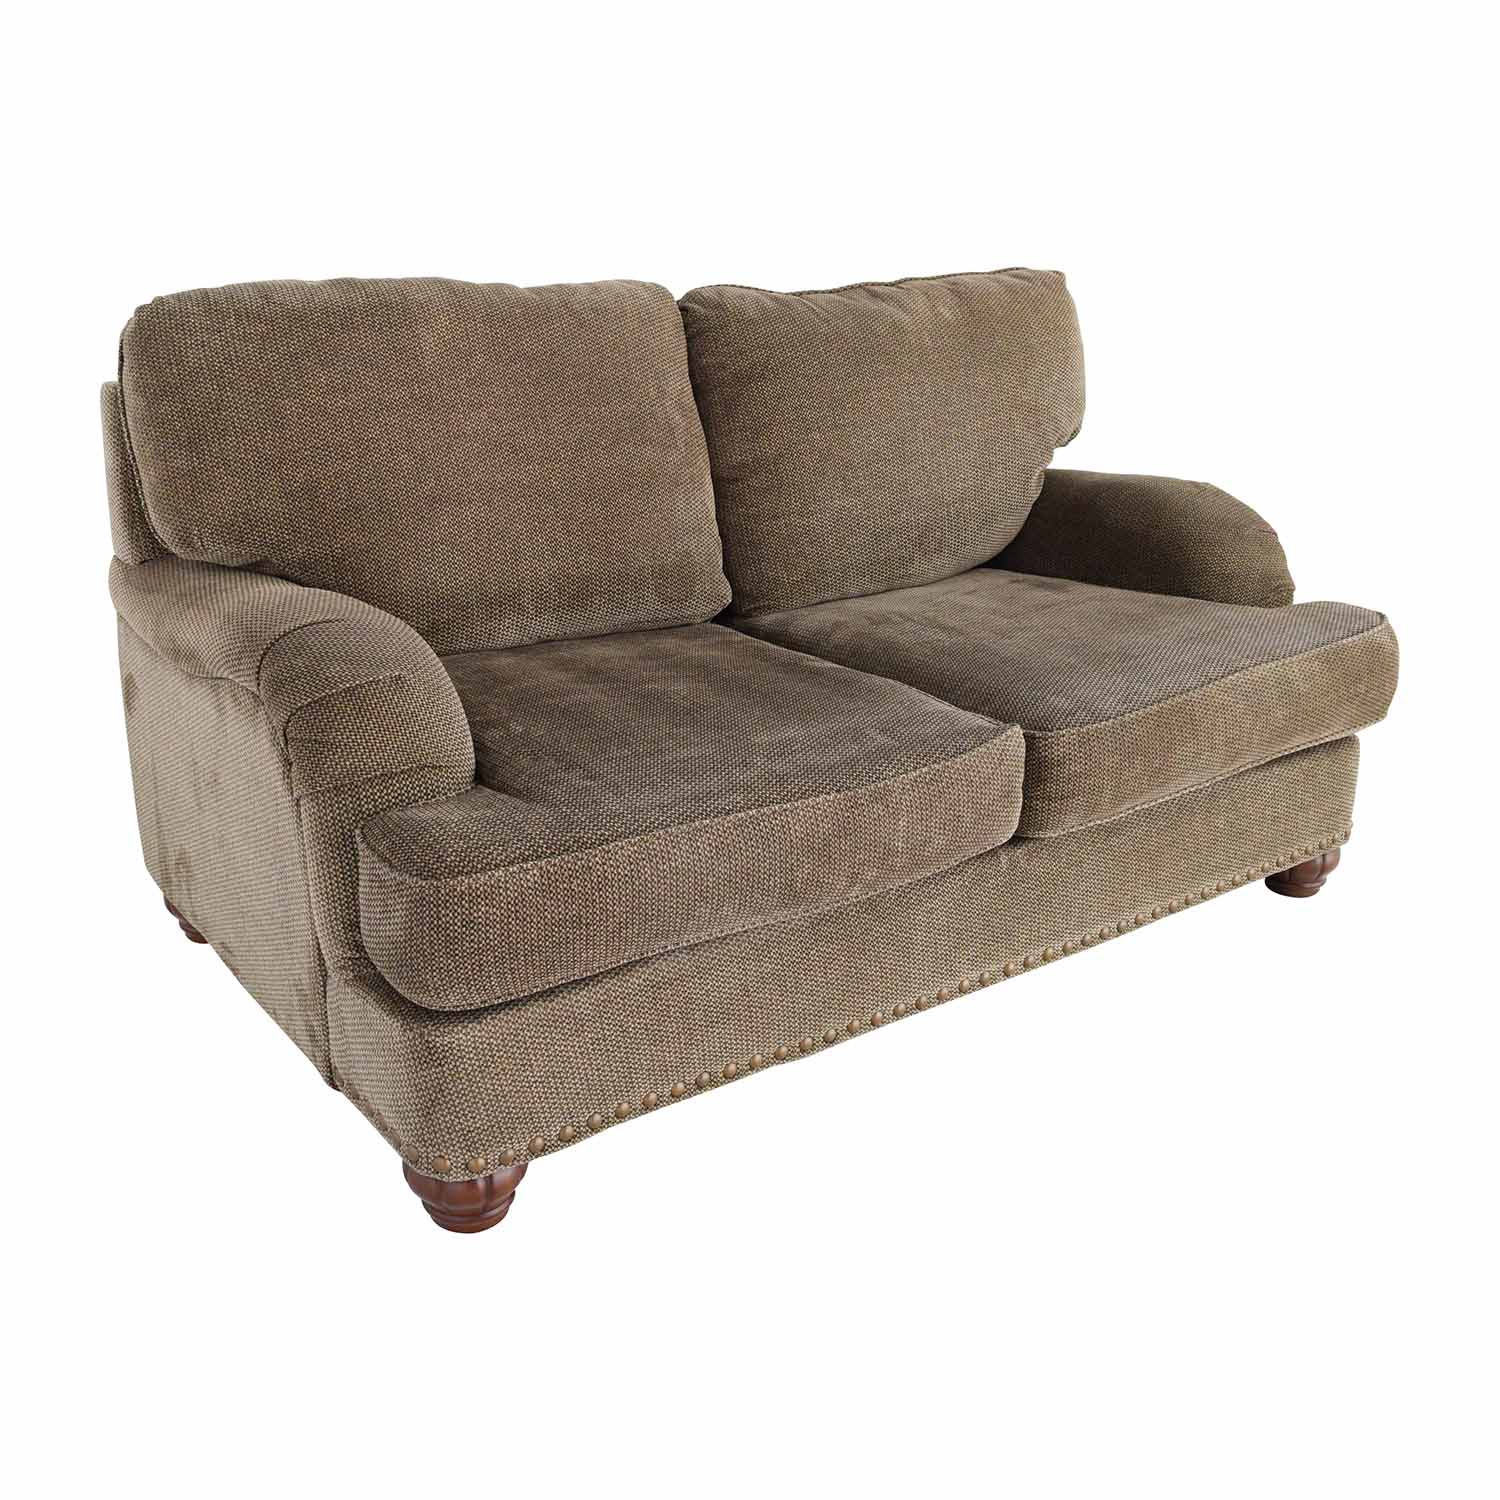 Ashley Furniture Sofas Bed